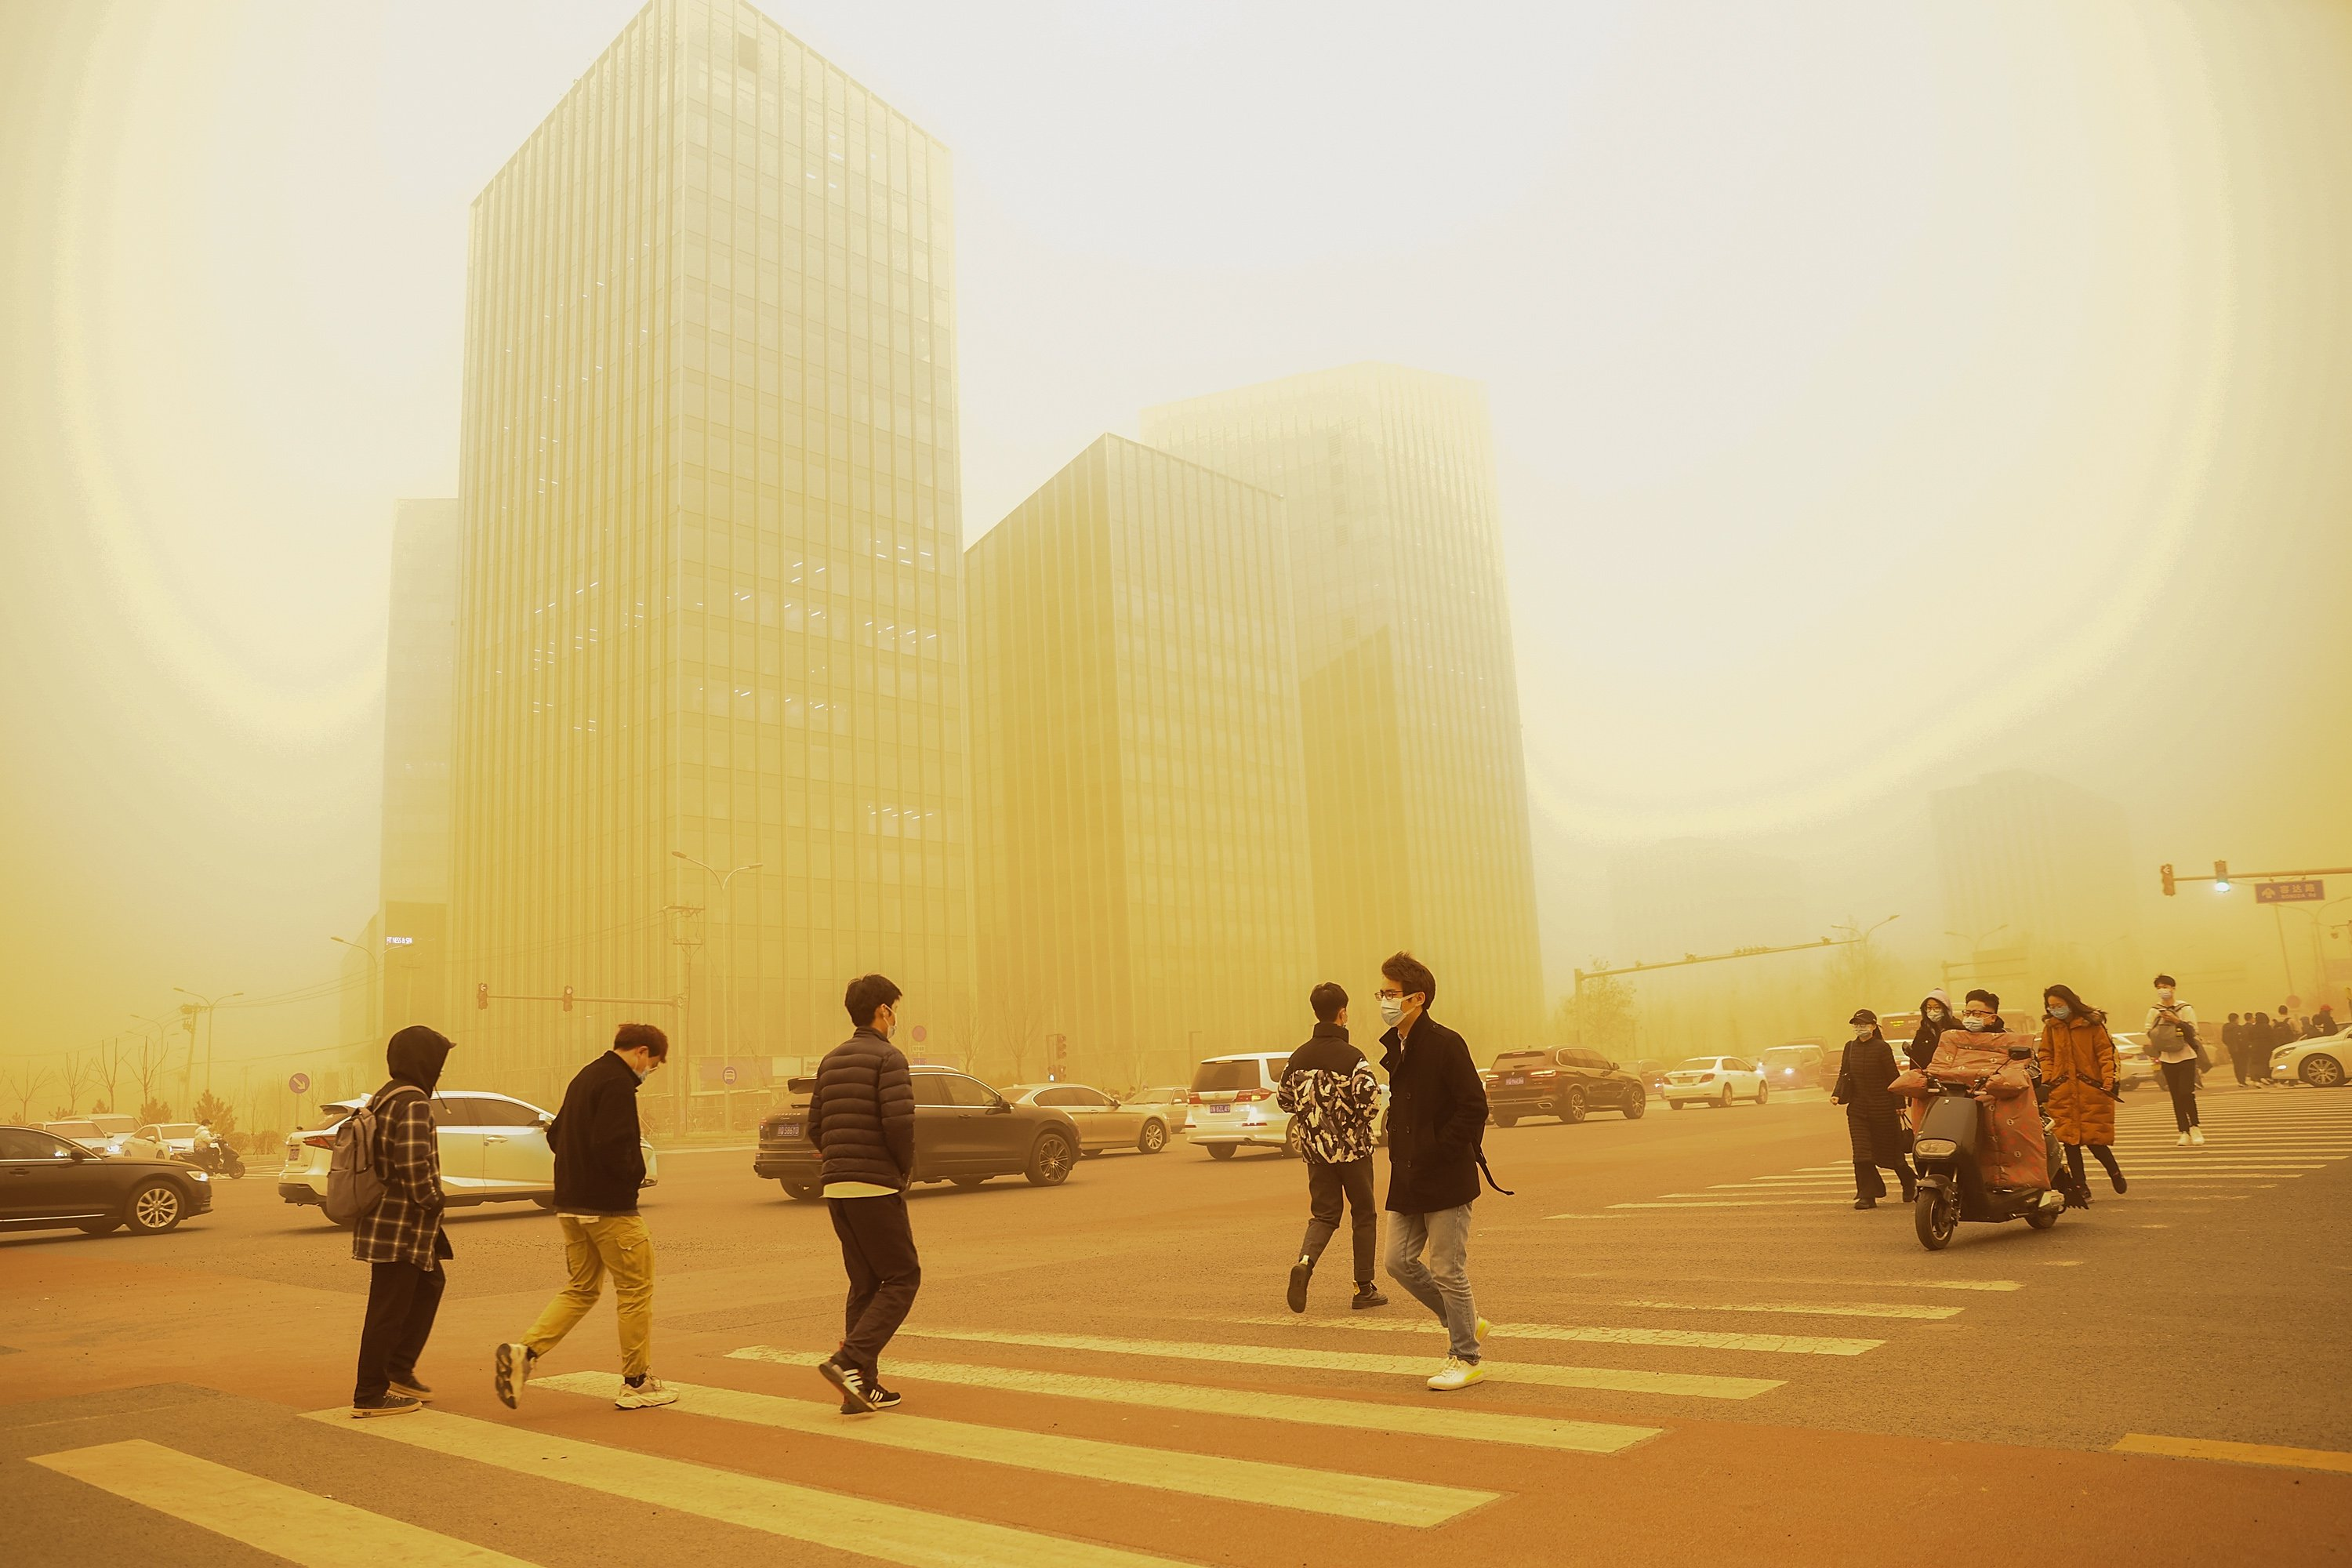 Record-Breaking Sandstorm Chokes Beijing in a Surreal Veil of Orange Dust  GettyImages-1231724348